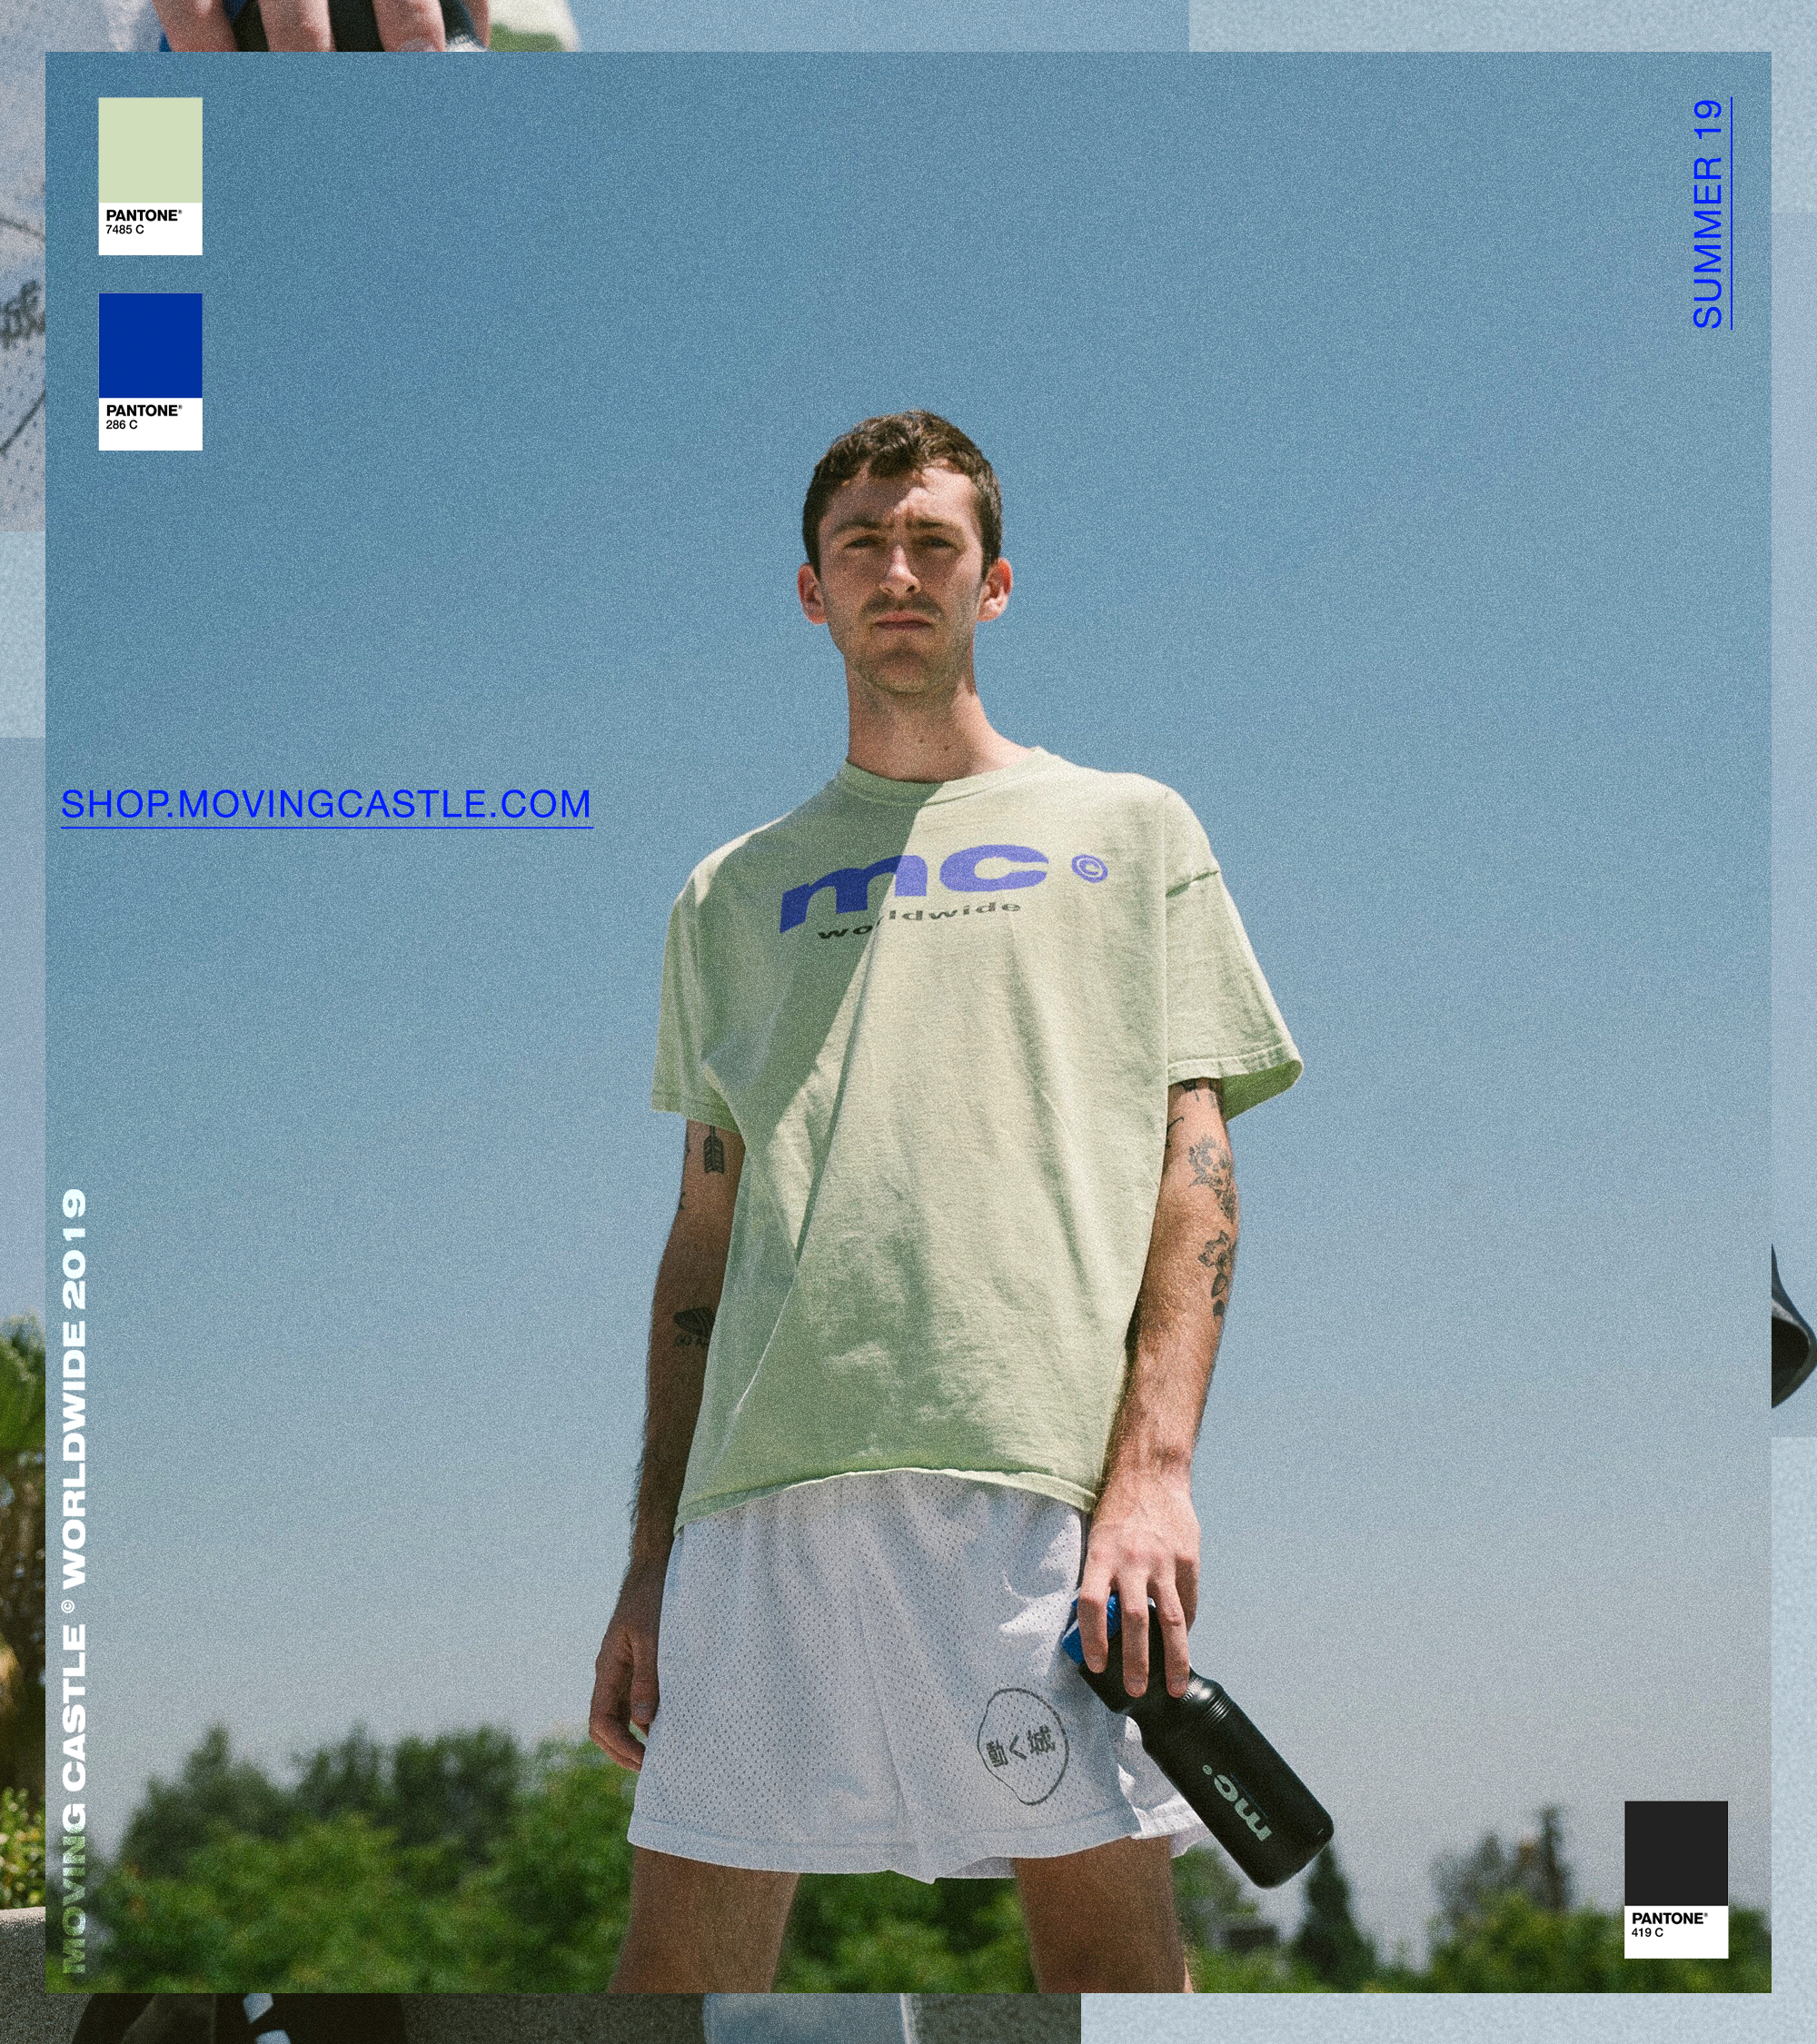 LOOKBOOK-PAGE-4.jpg